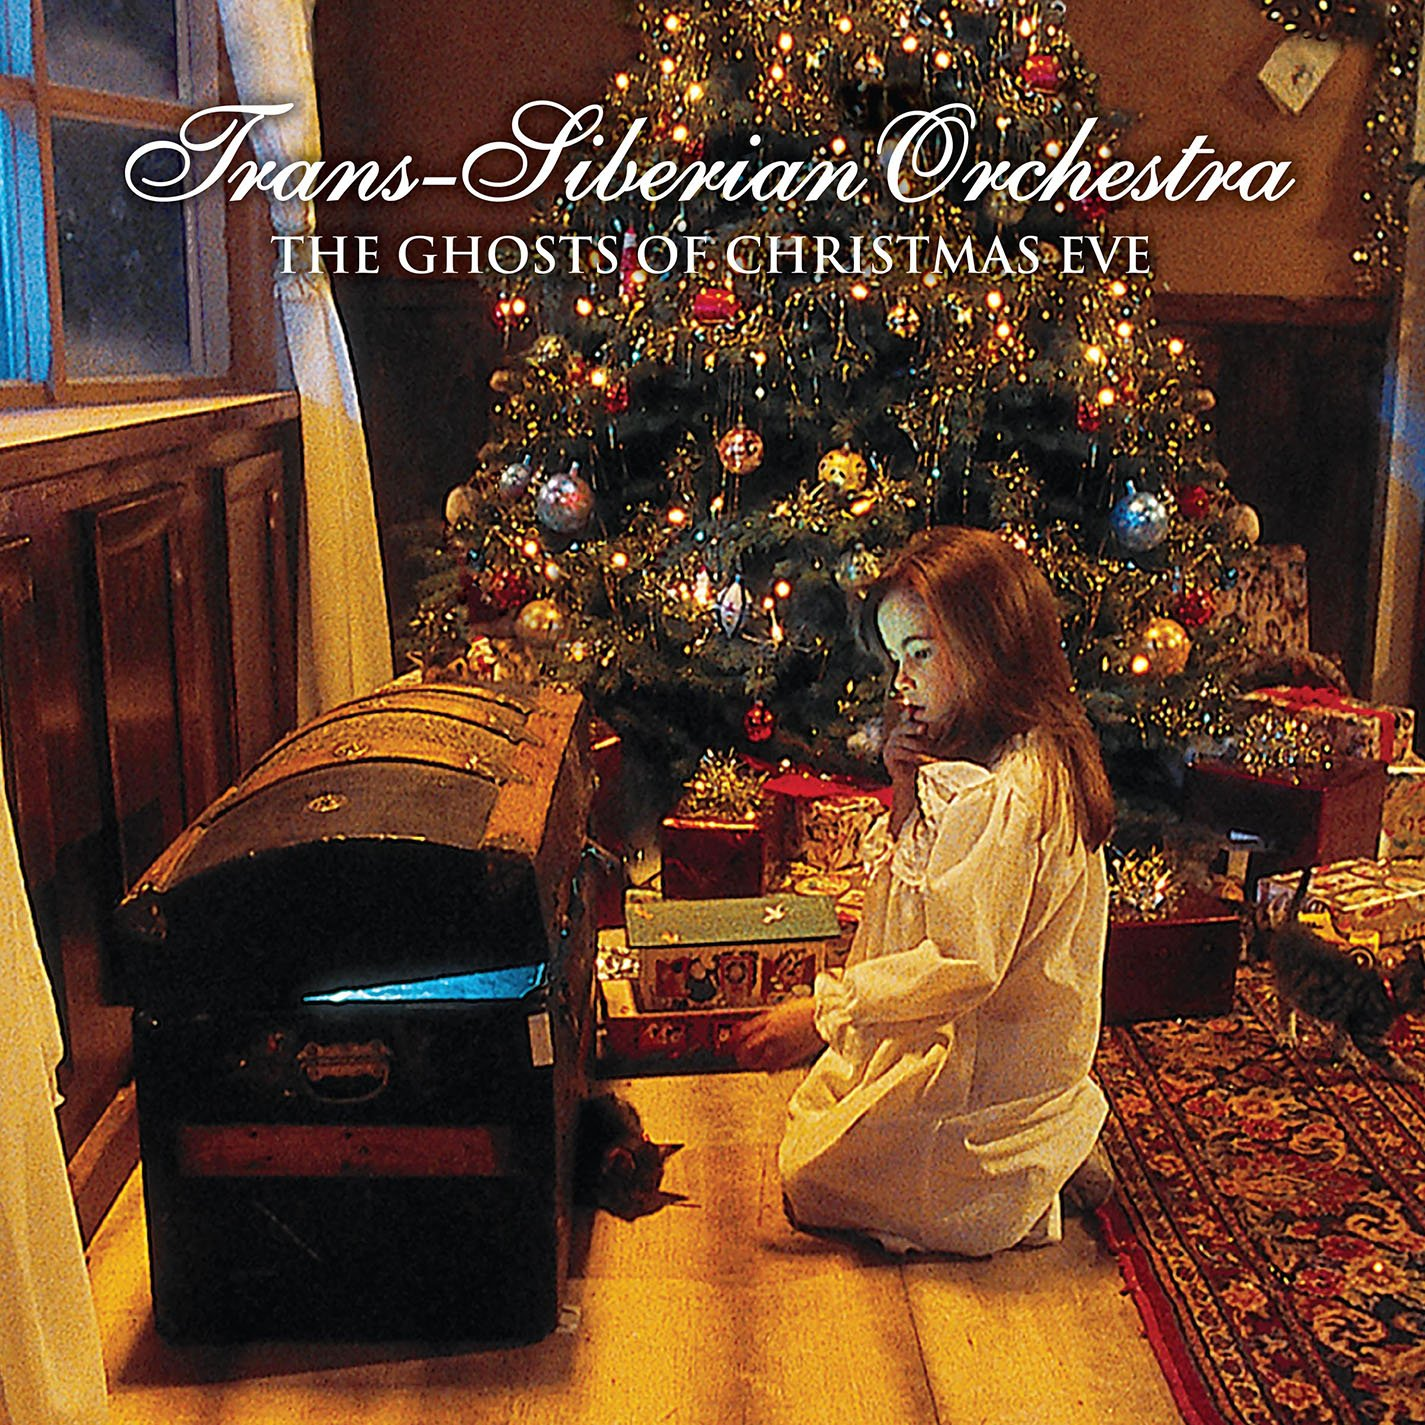 Trans-Siberian Orchestra - The Ghosts of Christmas Eve (Vinyl ...